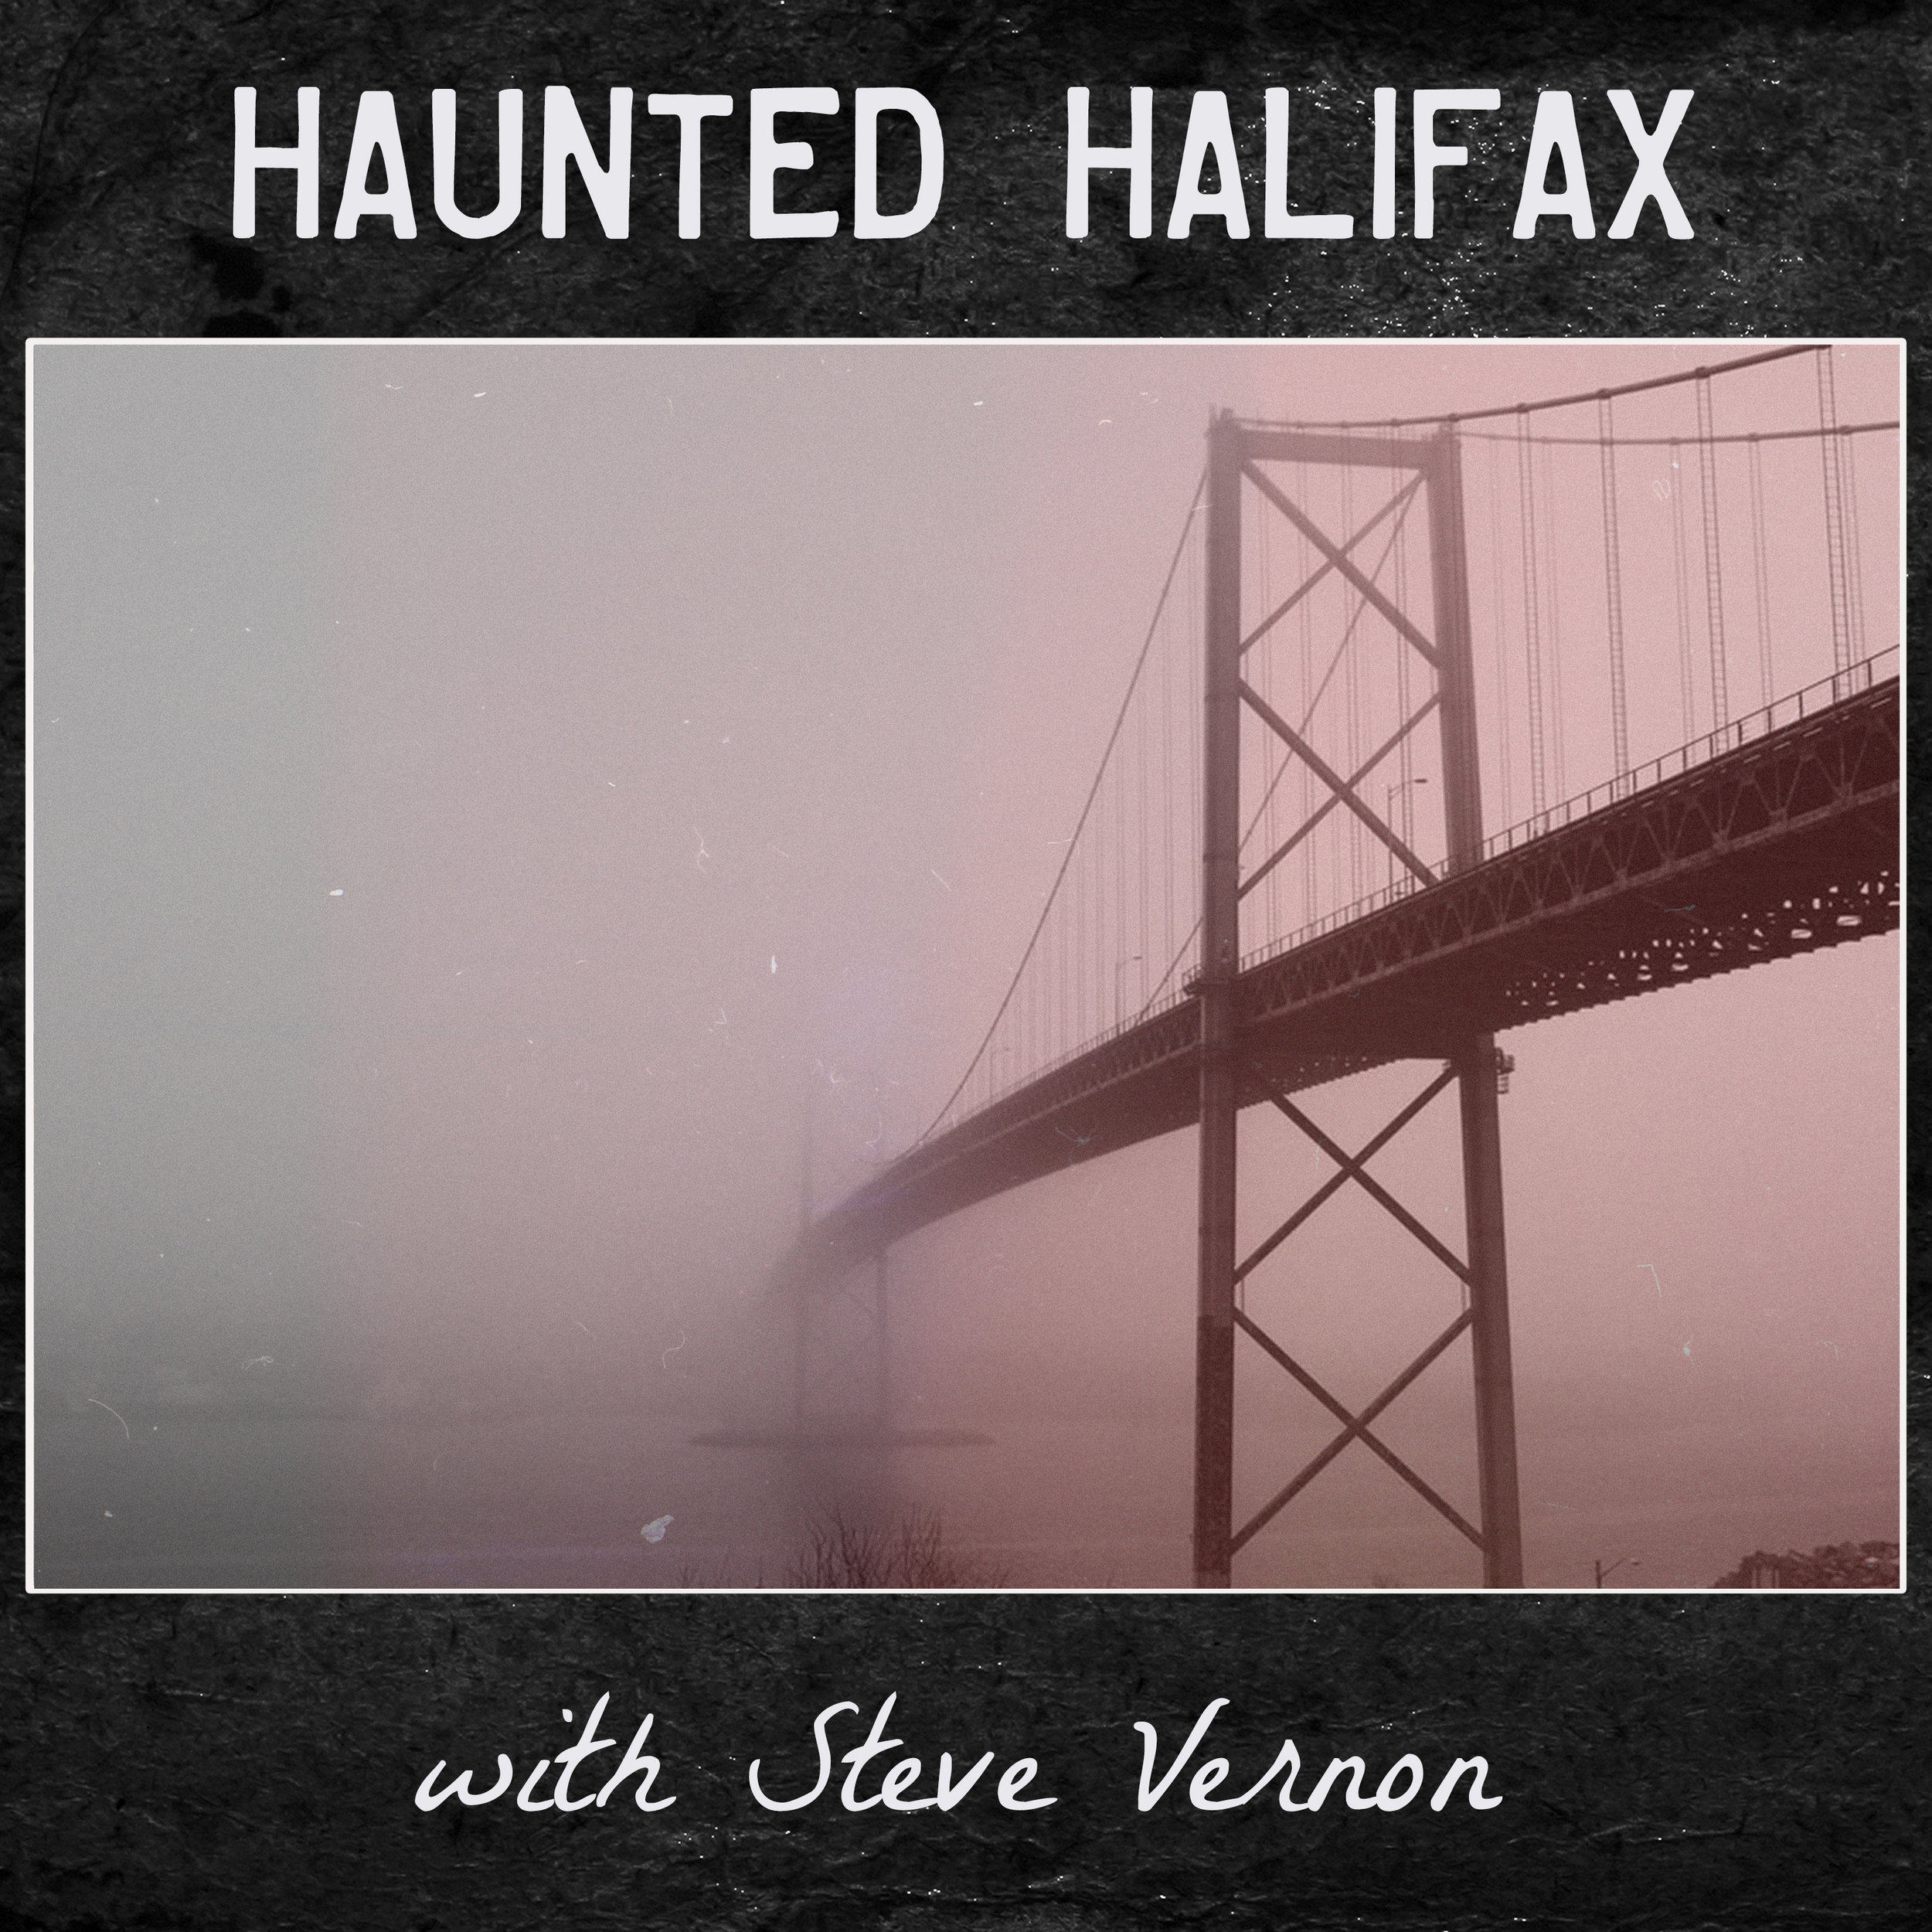 haunted Halifax cover.jpg